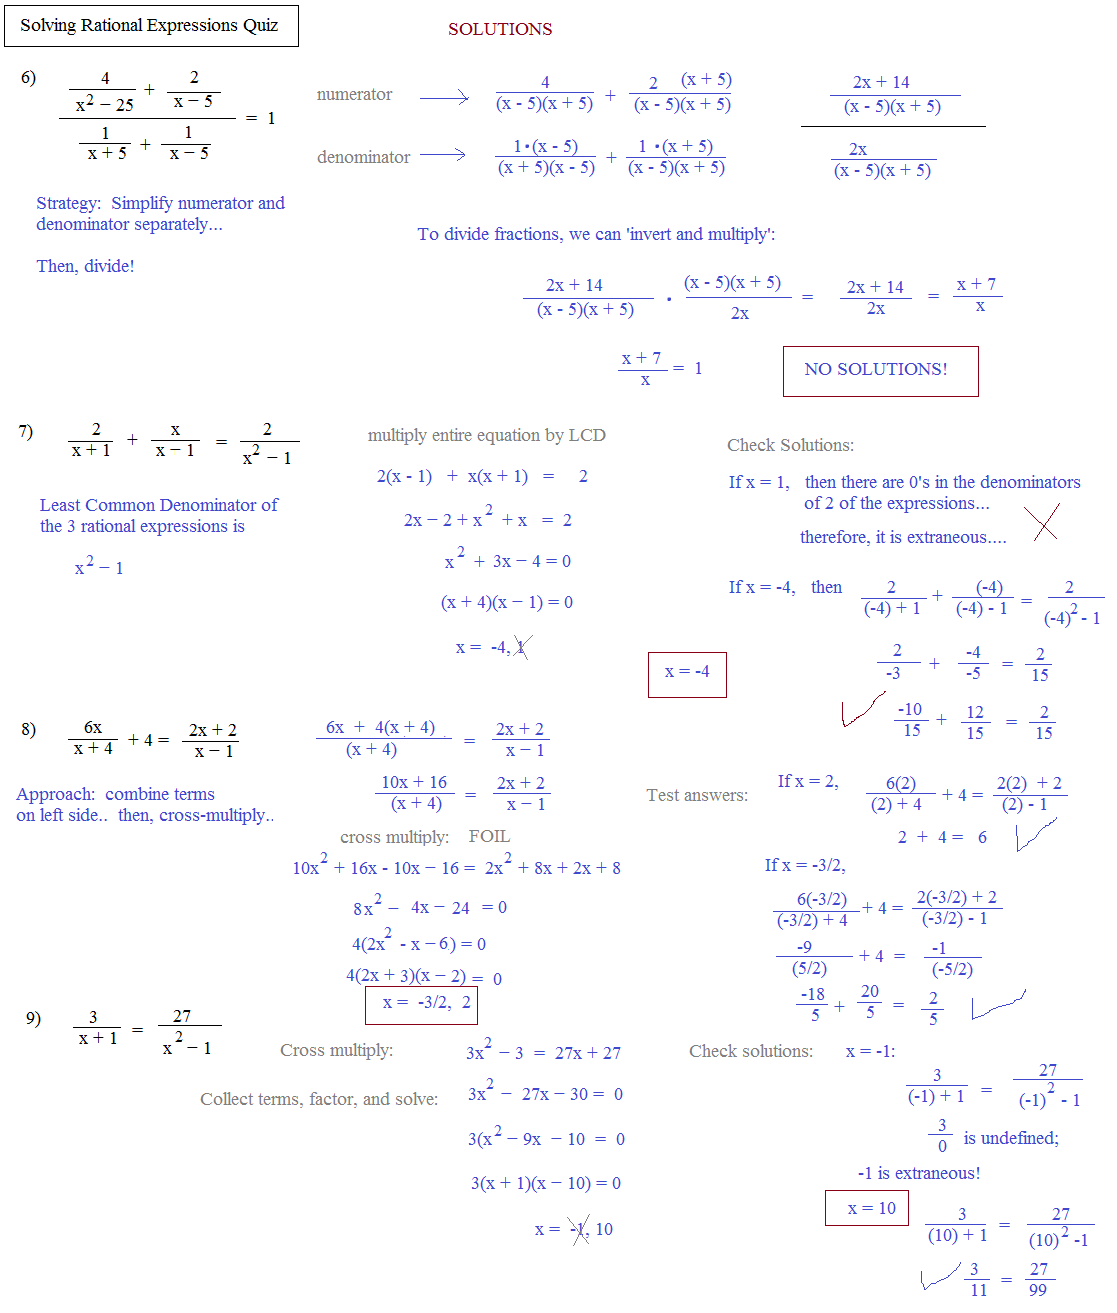 Worksheet Solving Rational Equations Worksheet math plane solving rational equations expressions quiz page 2 solutions